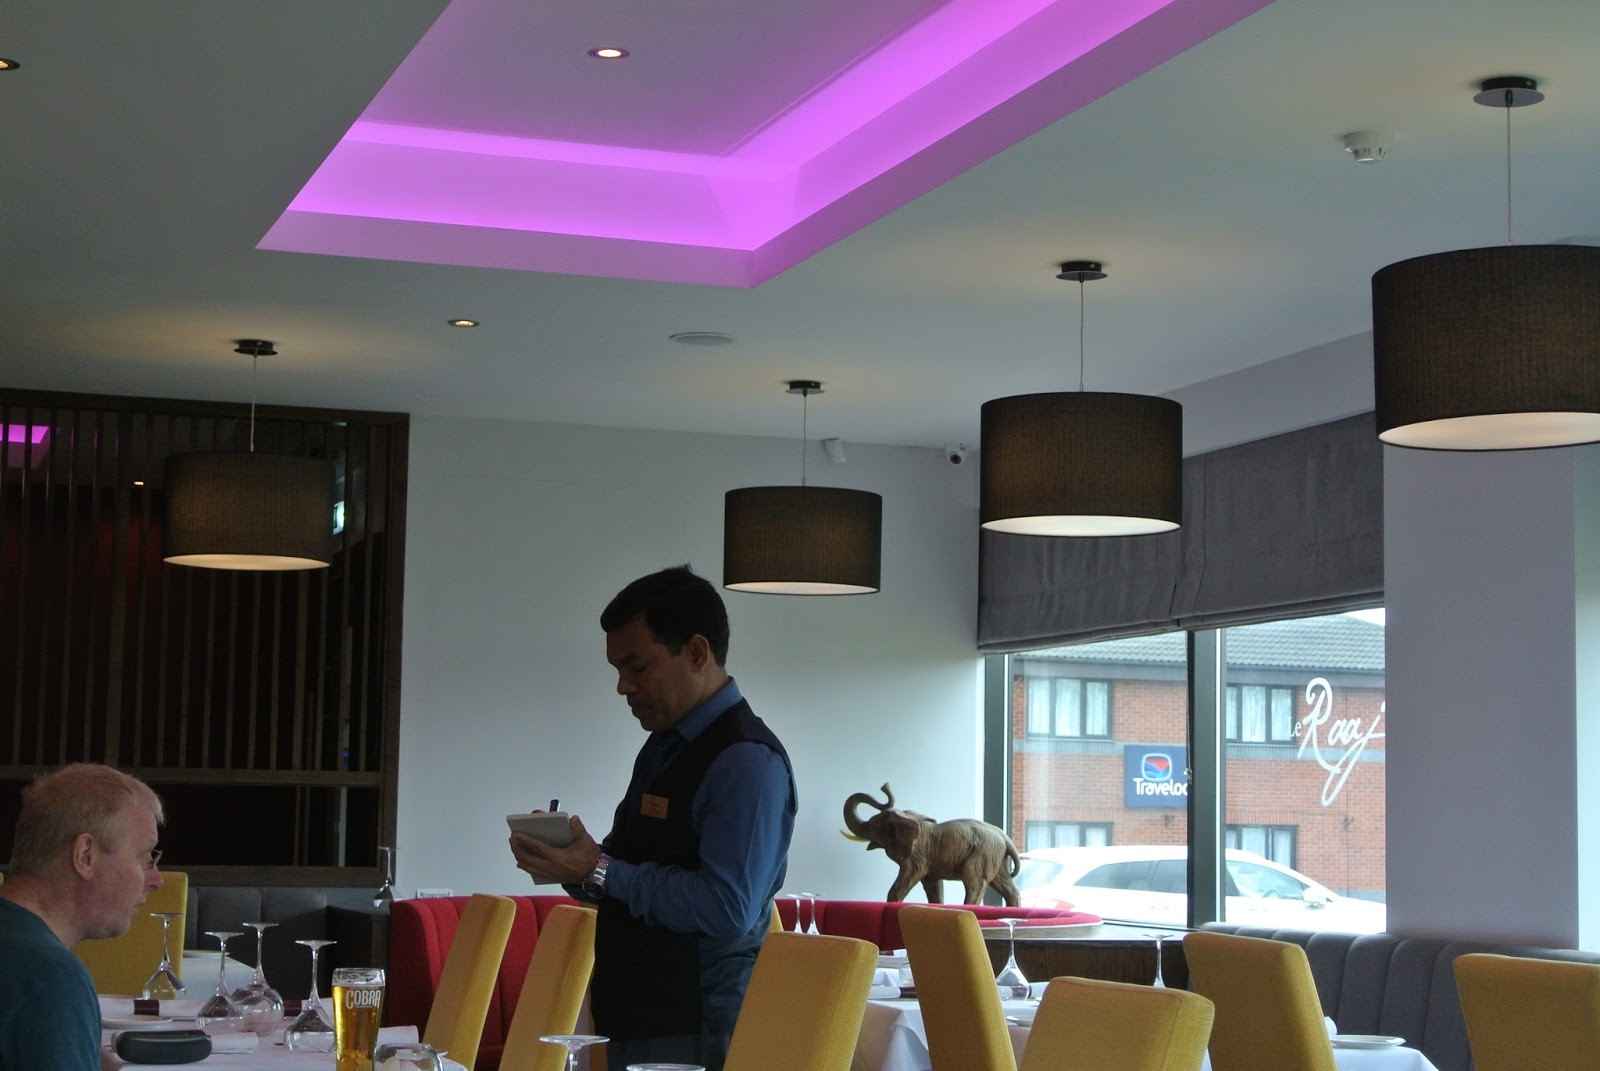 Le Raaj indian restaurant curry house in Sedgefield Teeside North East